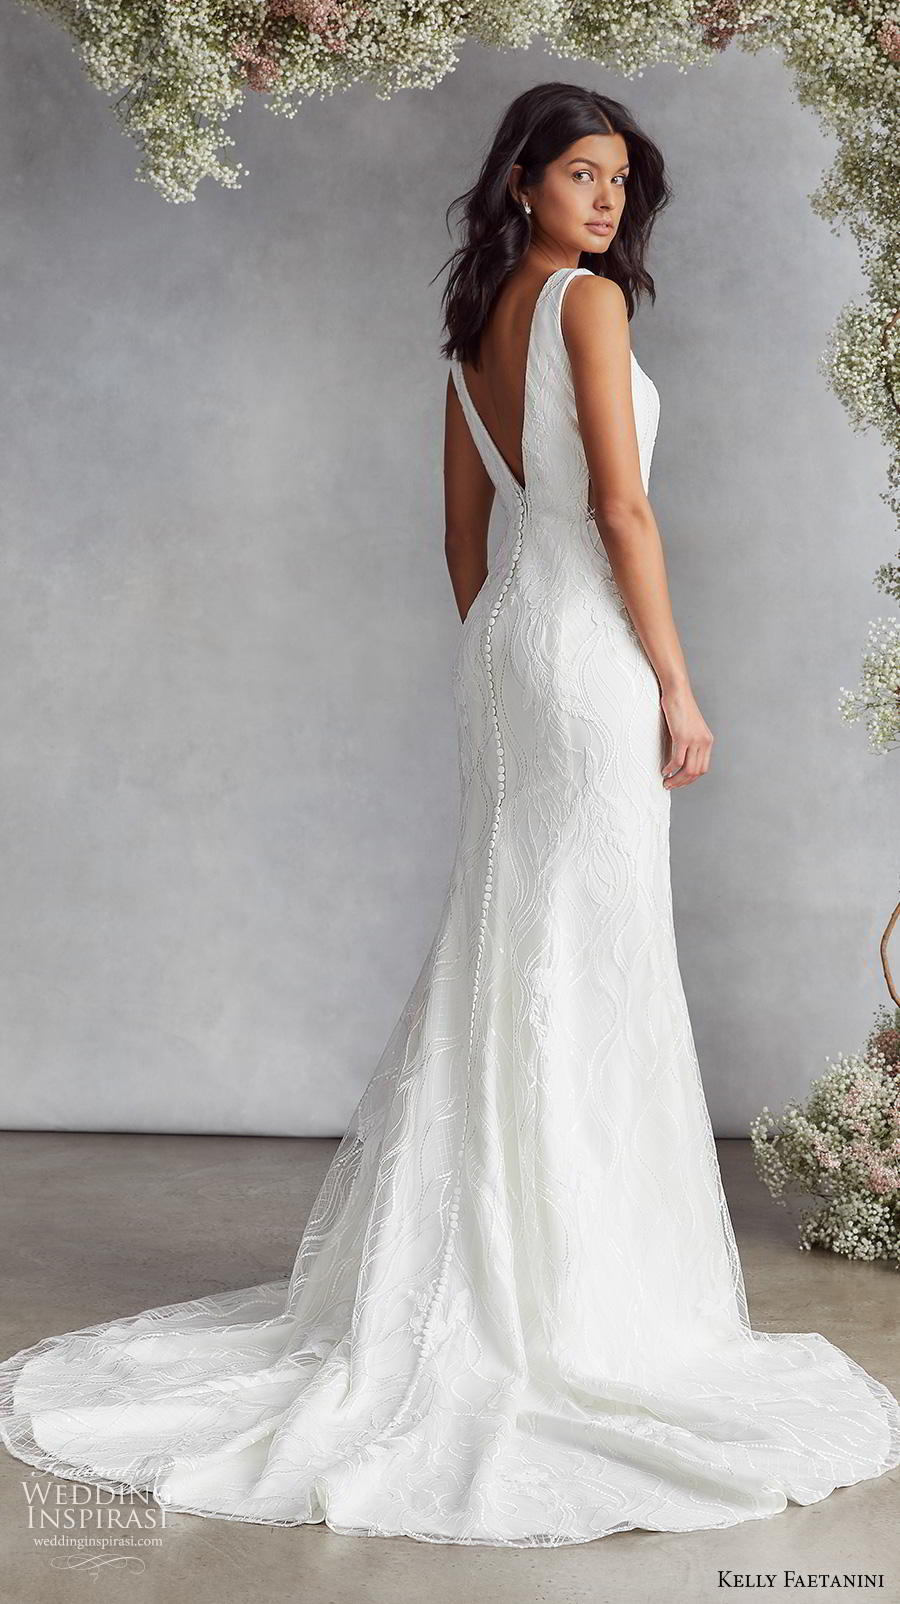 kelly faetanini fall 2020 bridal sleeveless funnel v neck light embellishment elegant fit and flare wedding dress backless v back medium train (18) bv